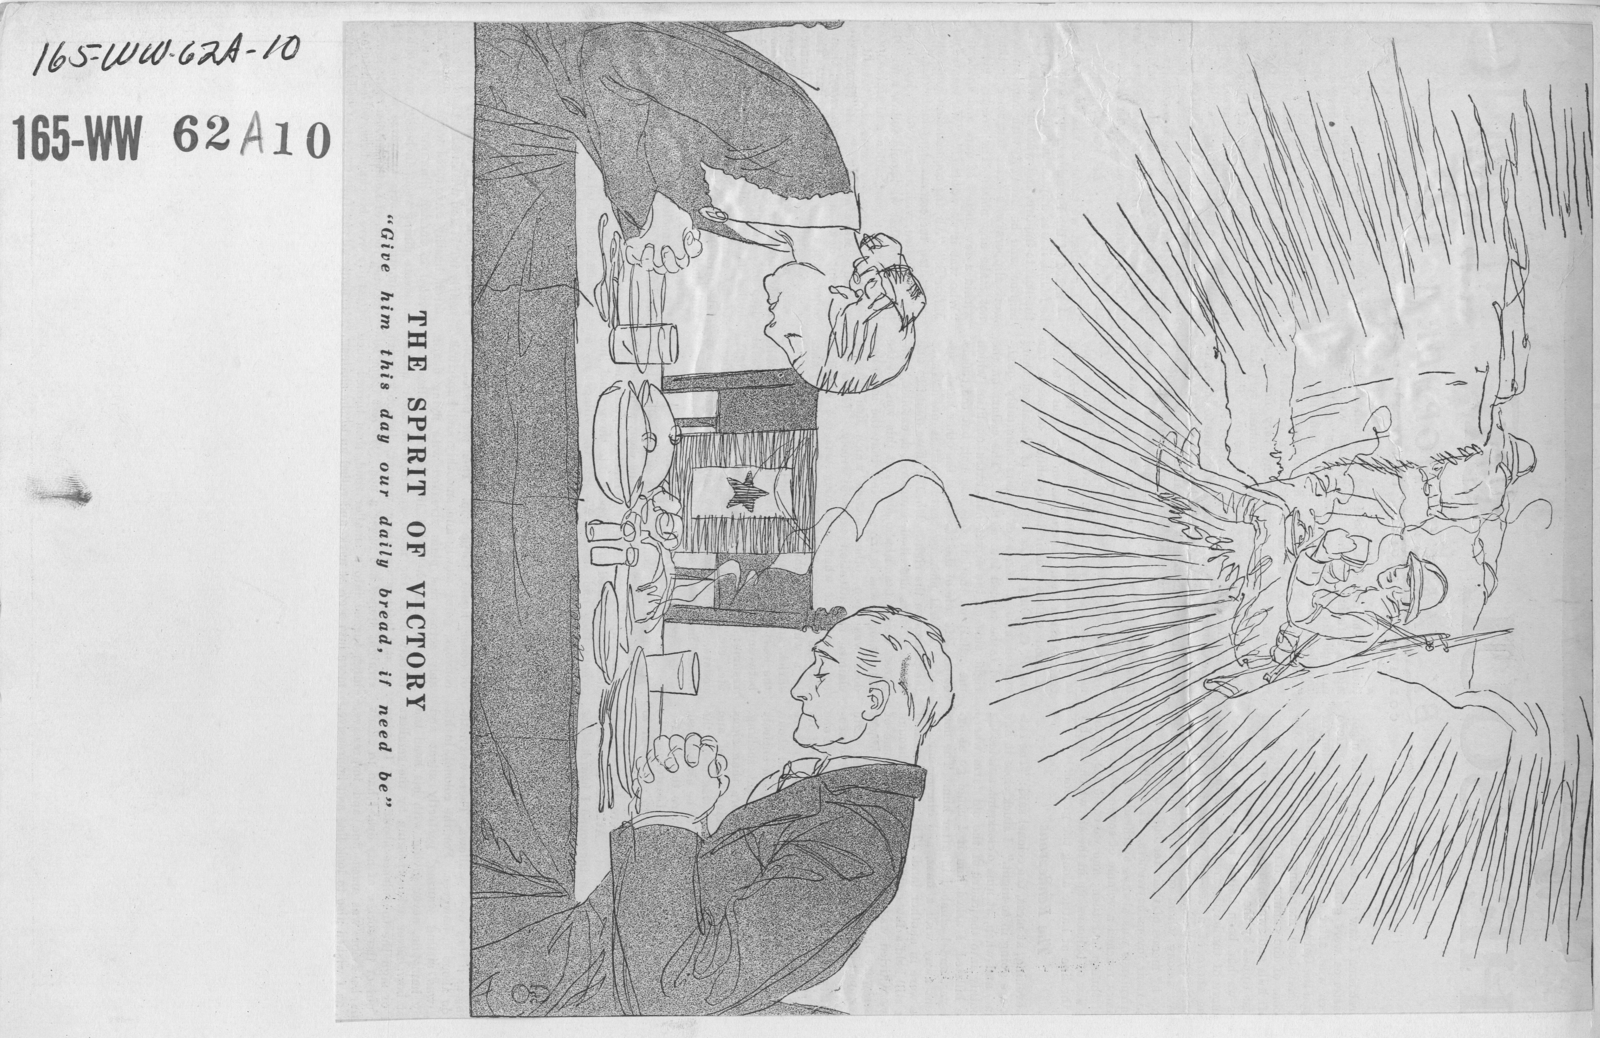 """Artists - American Artworks (Wartime Cartoons) - War Cartoons. """"Spirit of Victory: Give Him This Day Our Daily Bread, if Need Be"""" - by F.G. Cooper in Collier's, July 13, 1918"""